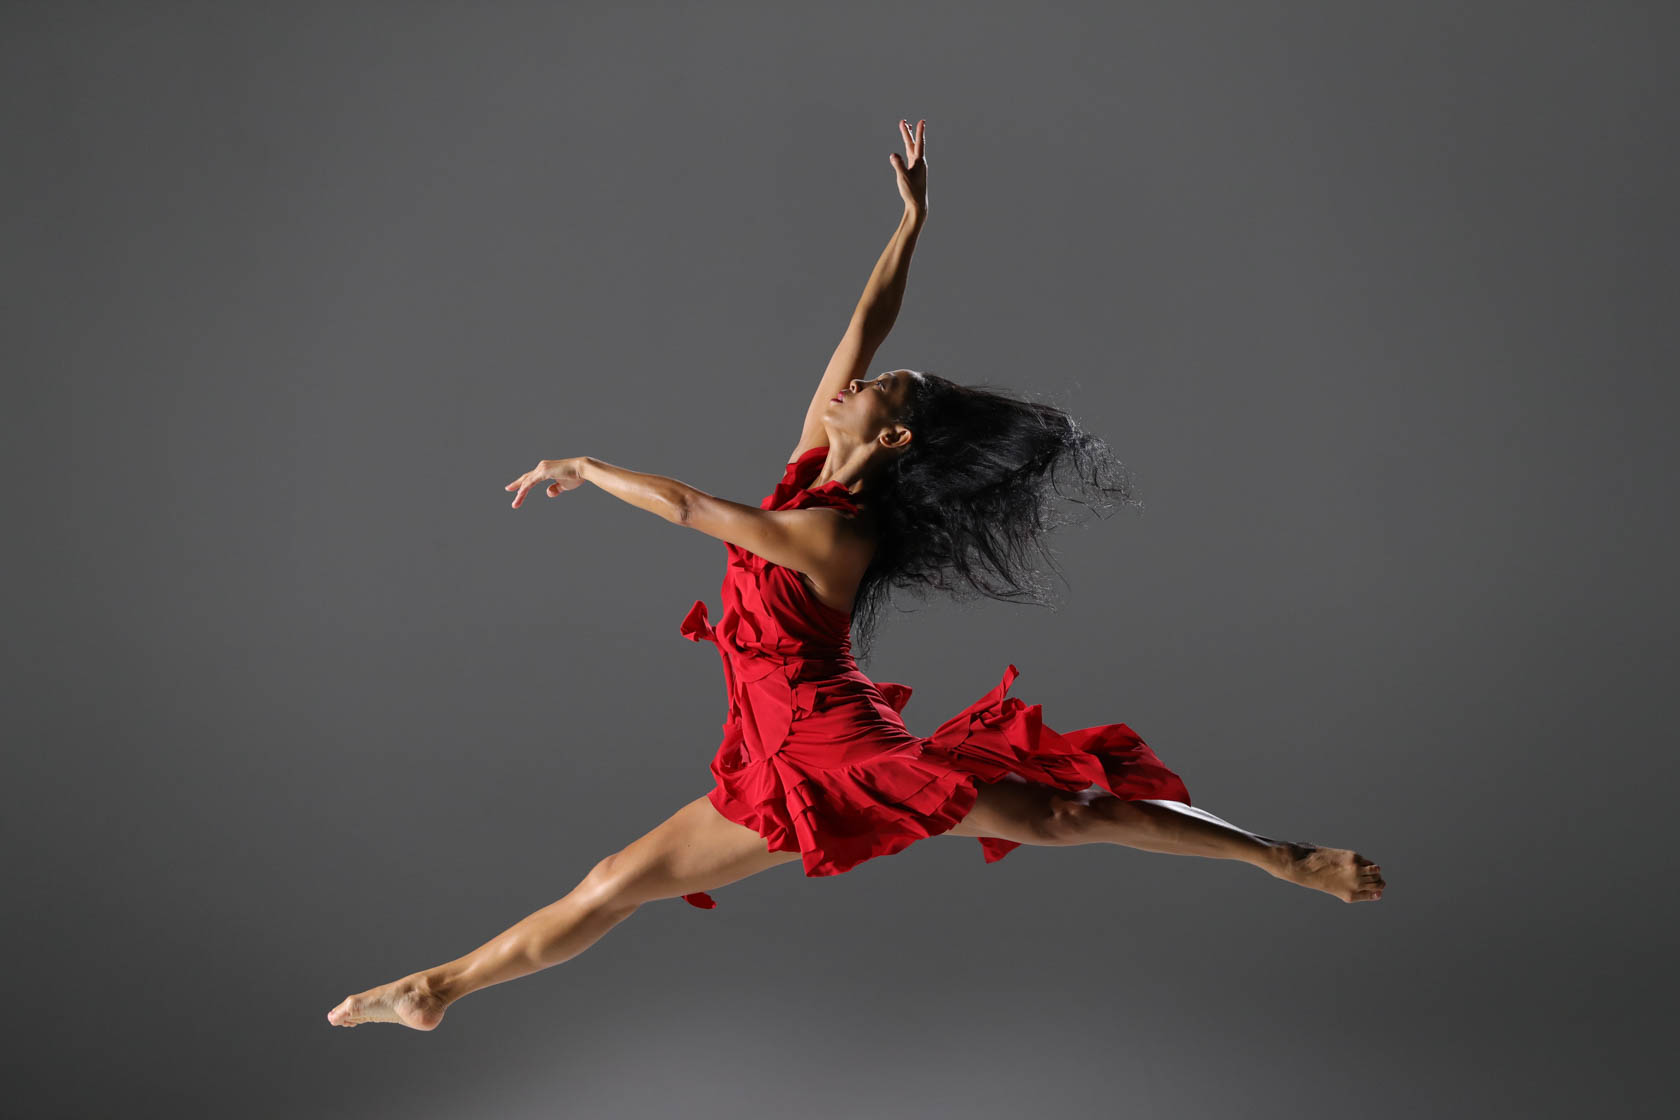 Dancer jumping taken with Canon EOS-1DX Mark II DSLR camera